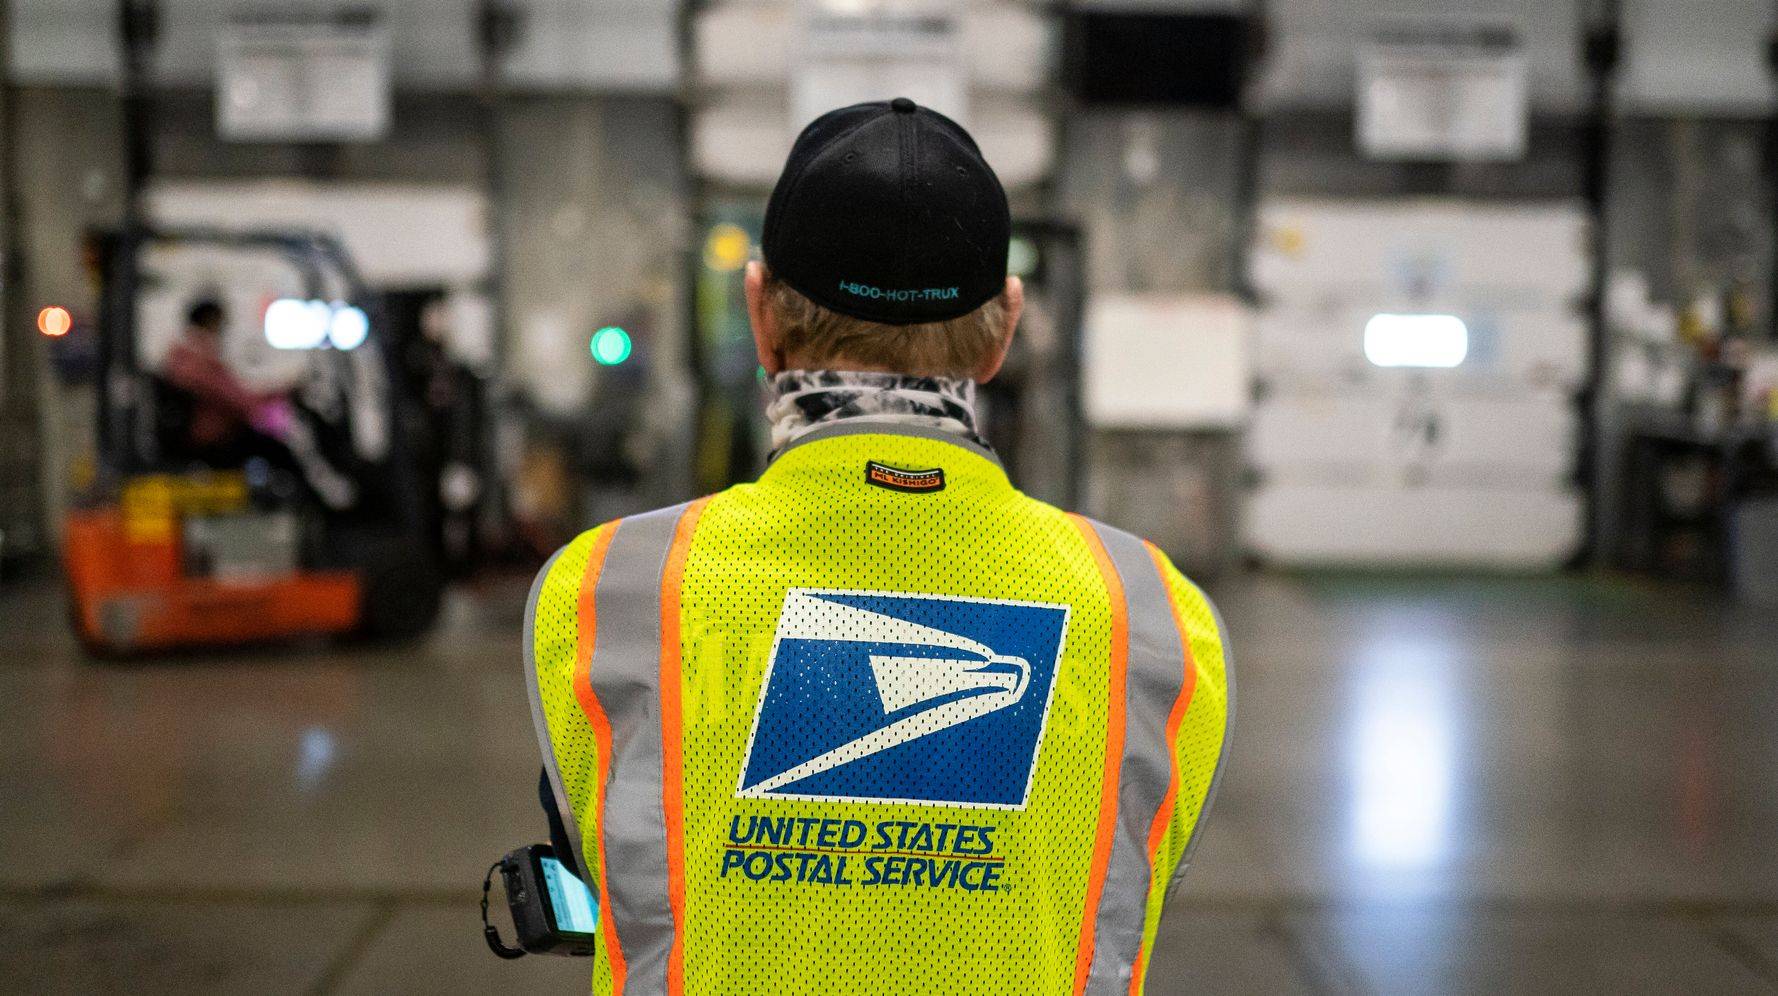 Federal Judge Orders USPS To Reinforce 'Extraordinary Measures' To Deliver Ballots